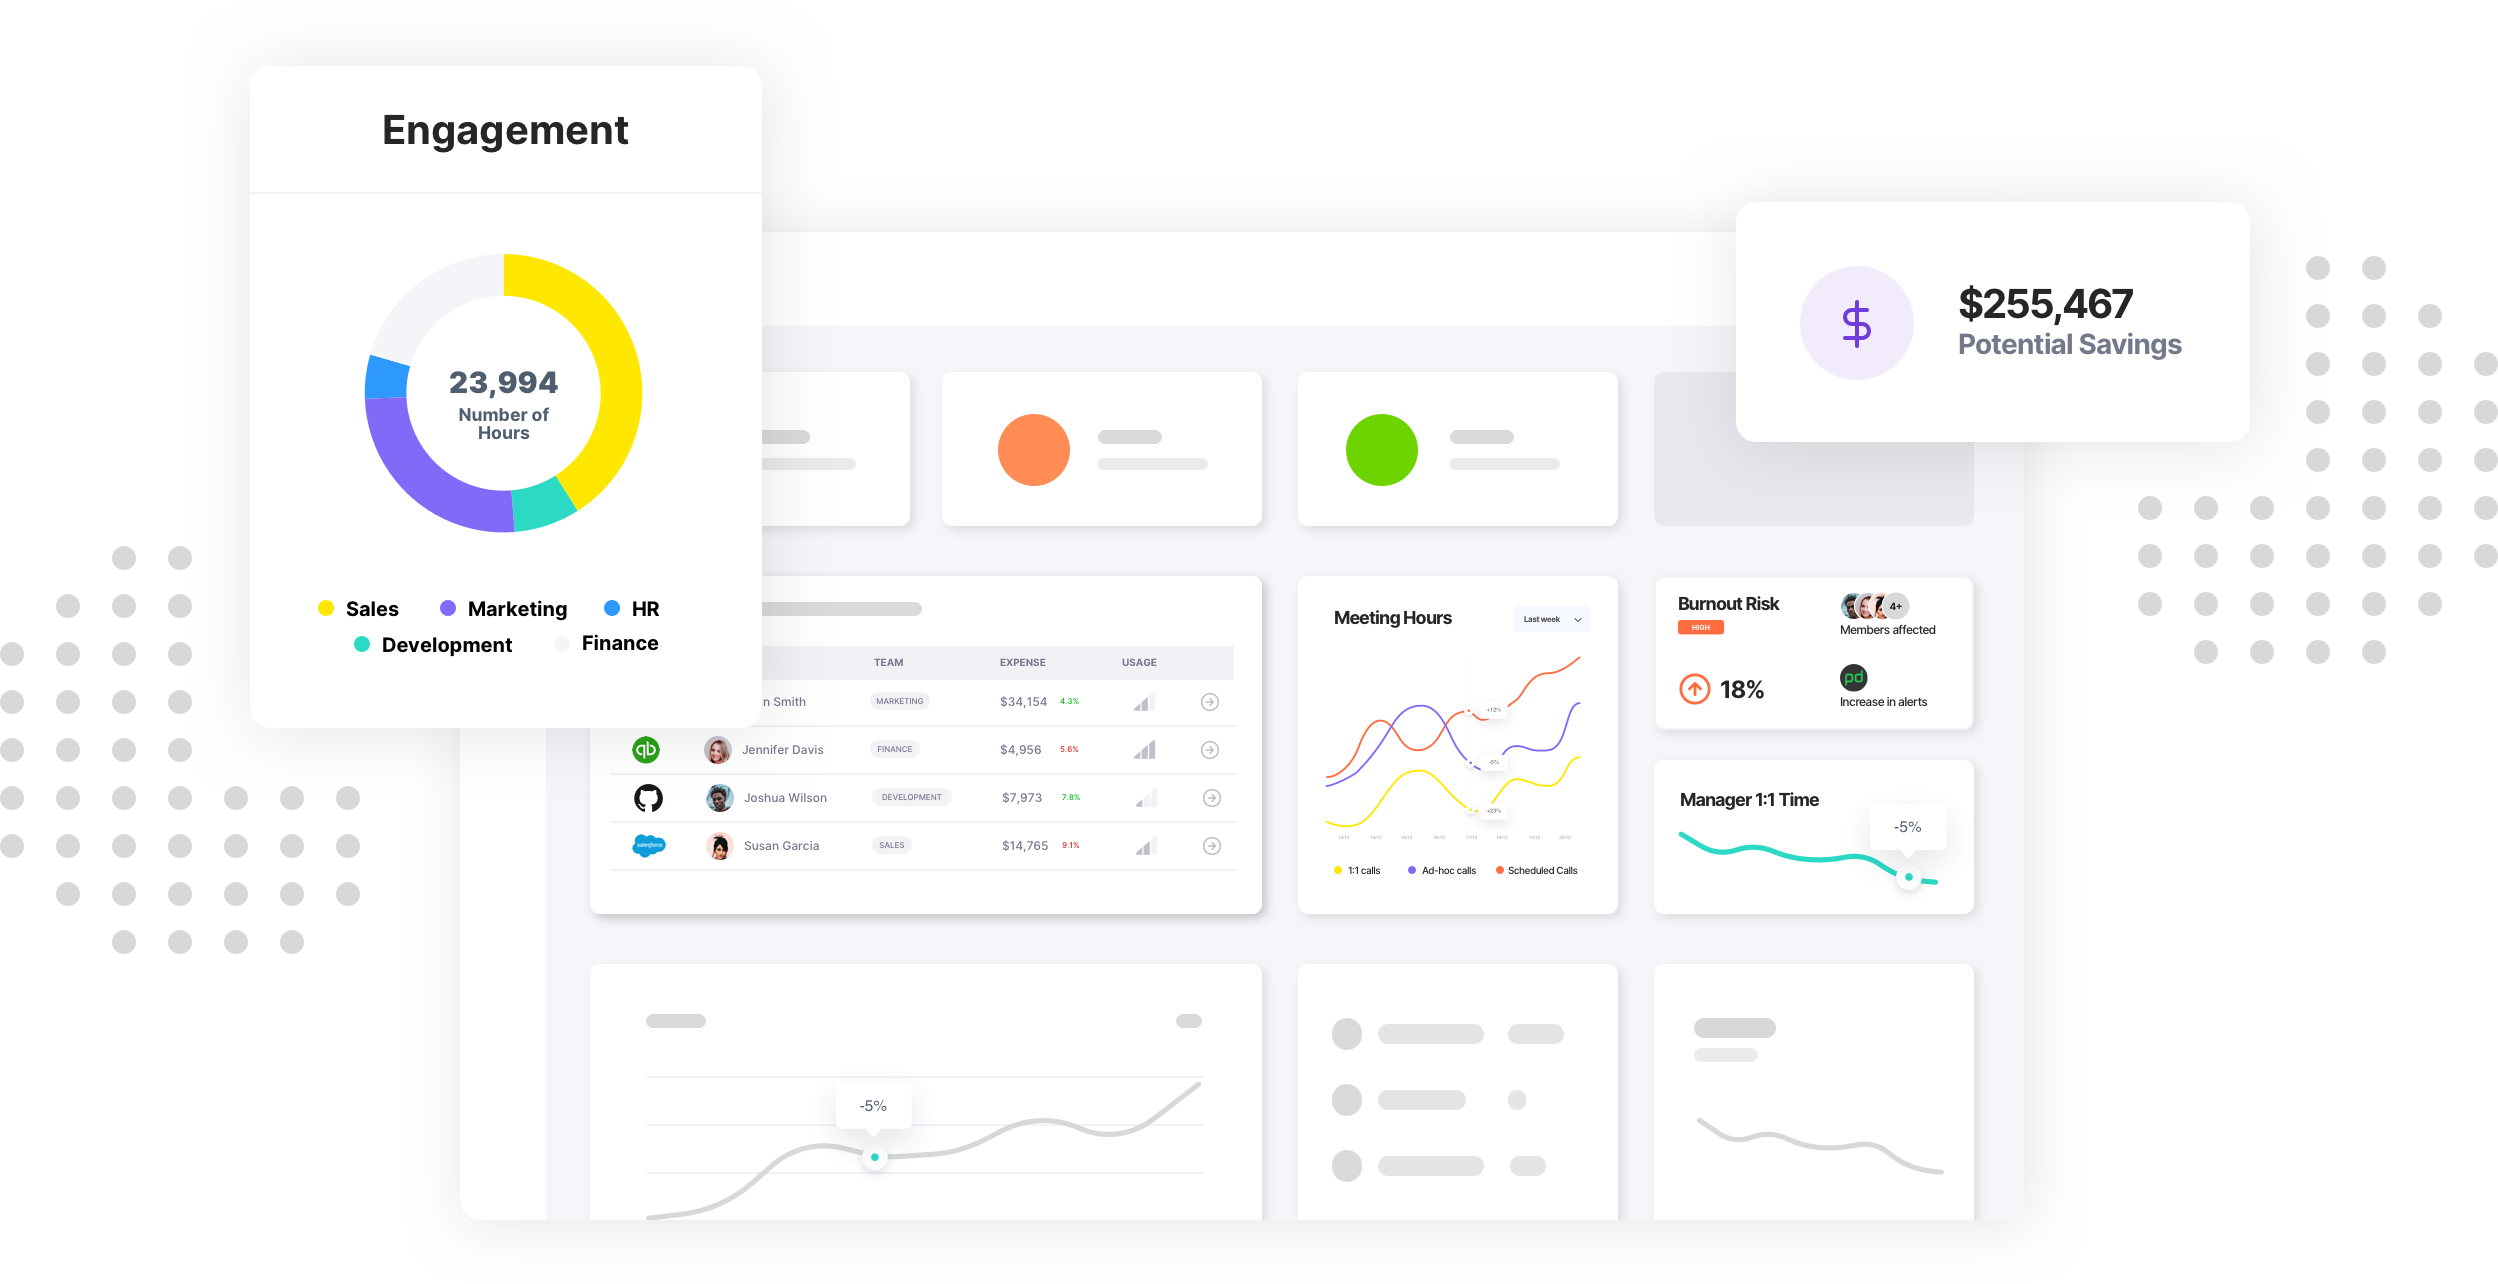 Hatica - Helps you identify patterns of engagement, productivity, burnout, and many more using SaaS data